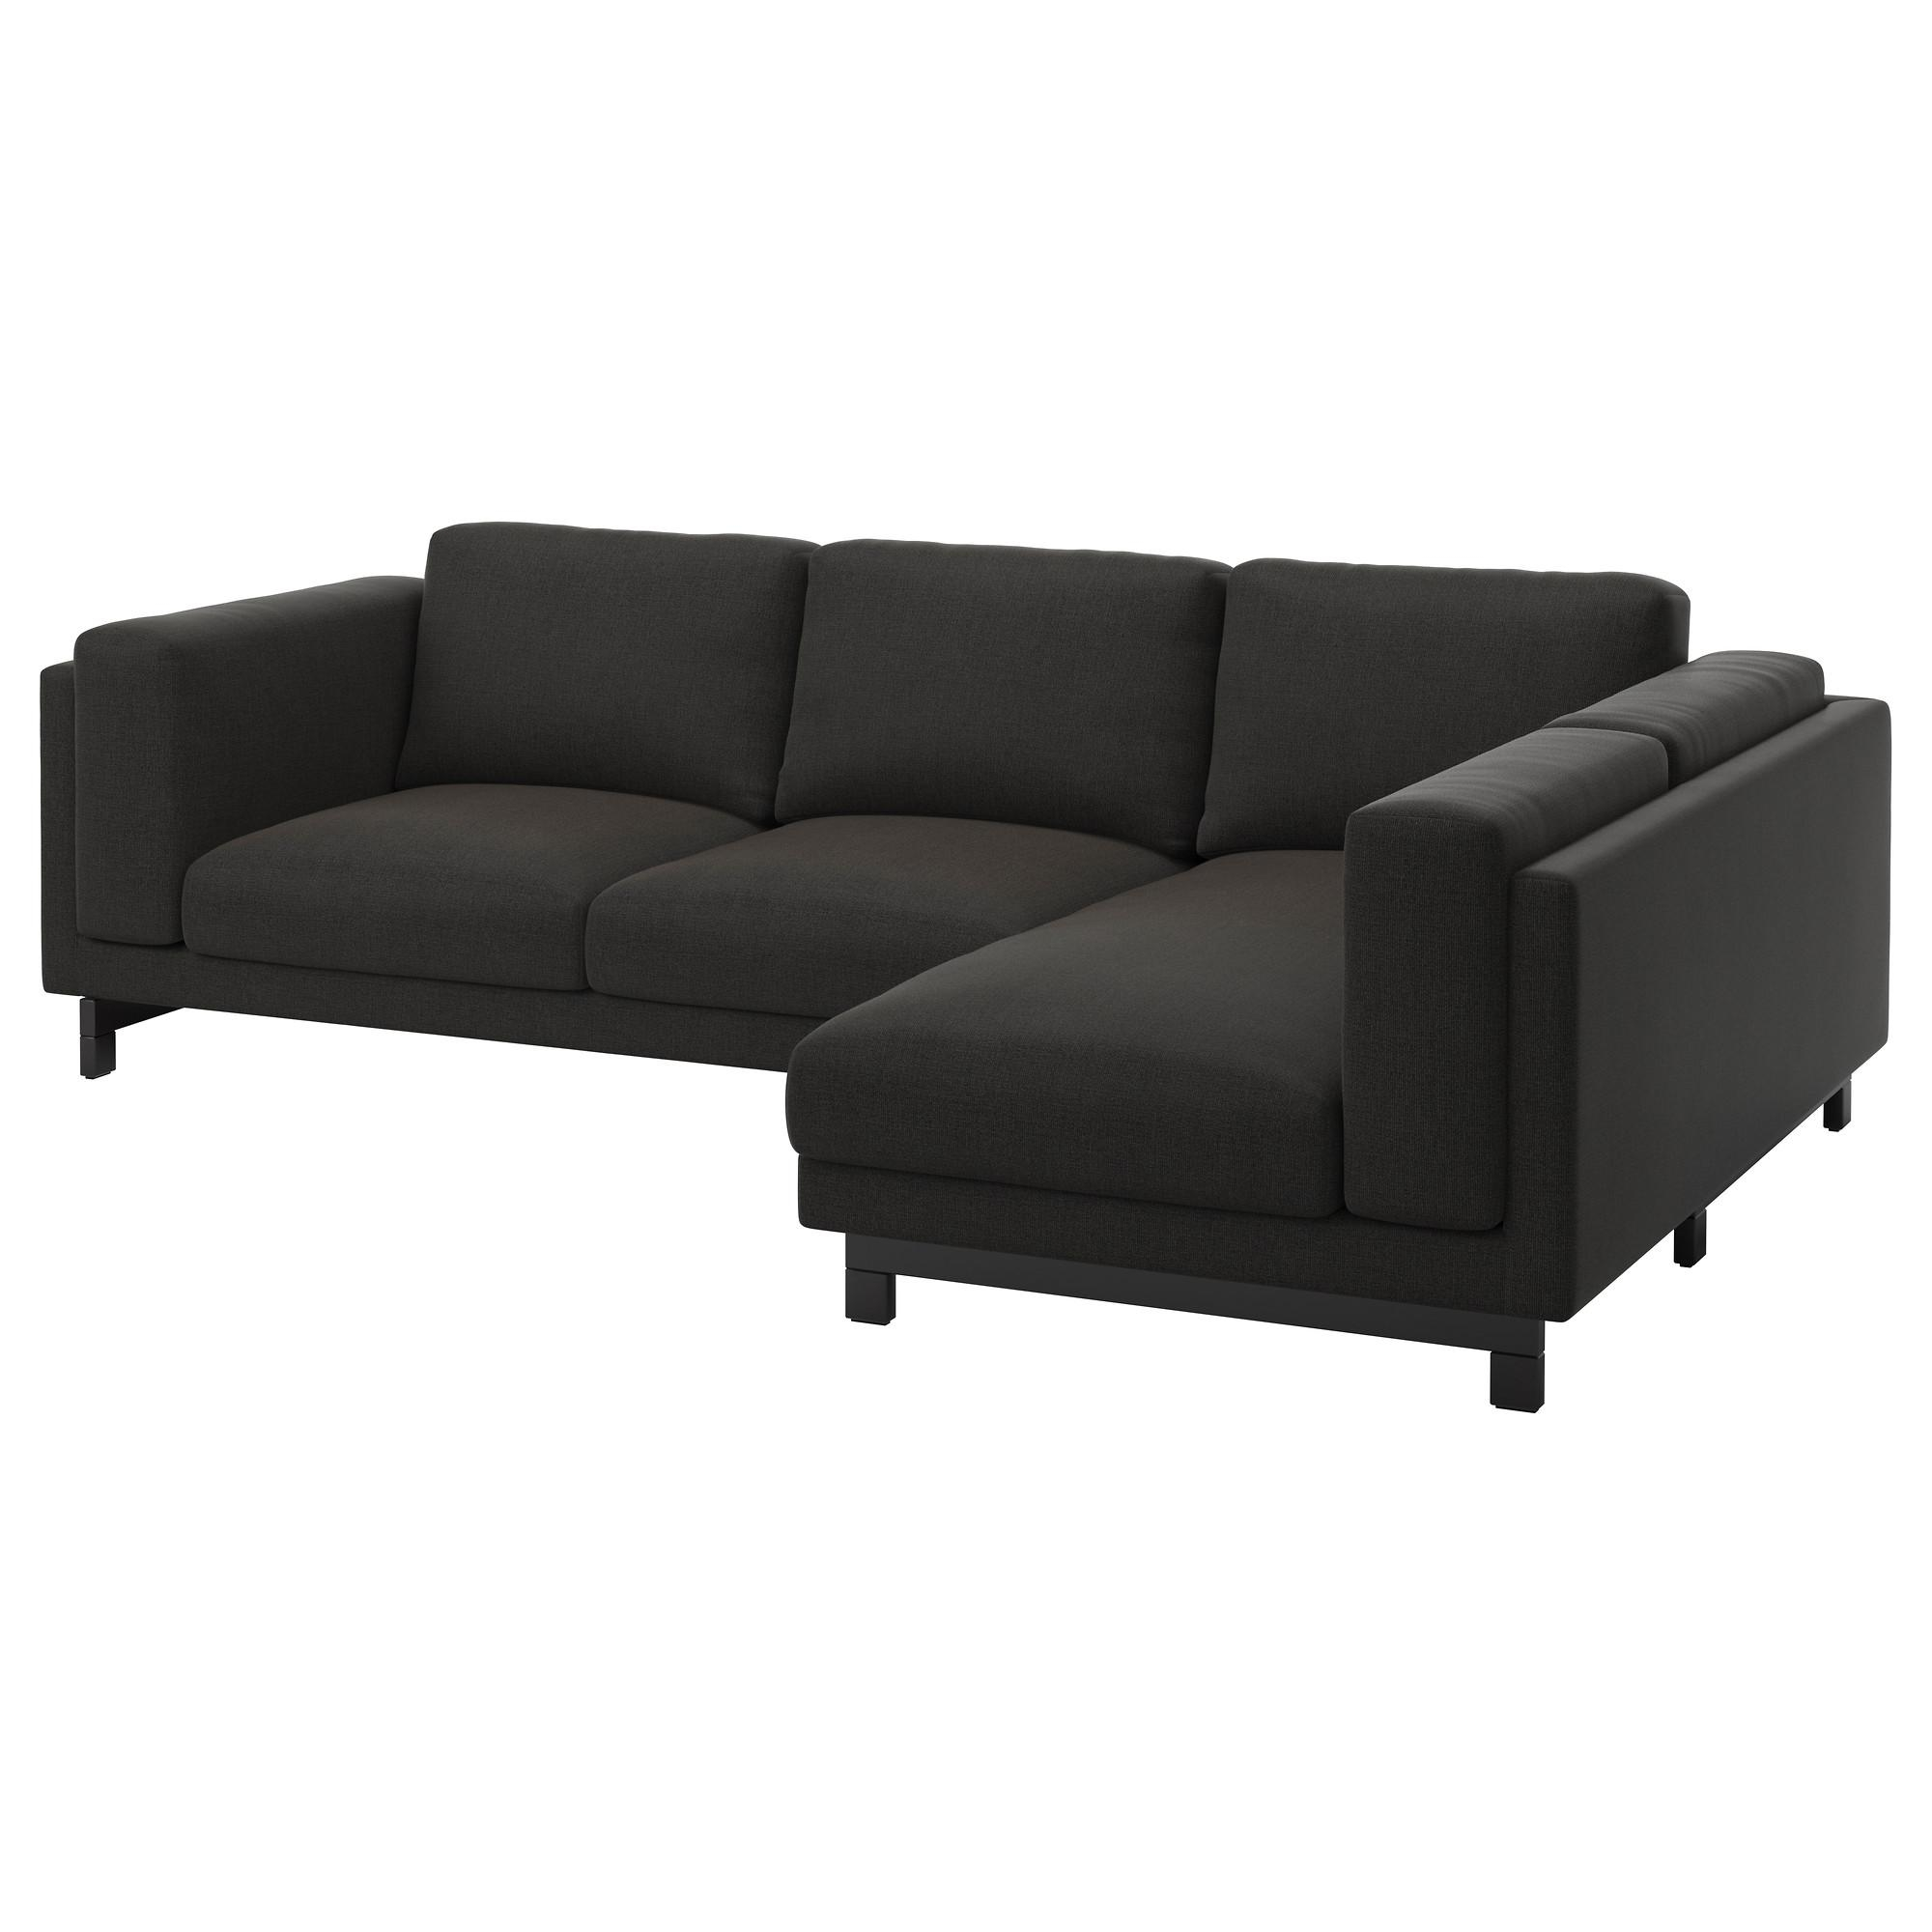 Ikea Sofa 3 21 43 Choices Of 3 Seater Sofas For Sale Sofa Ideas